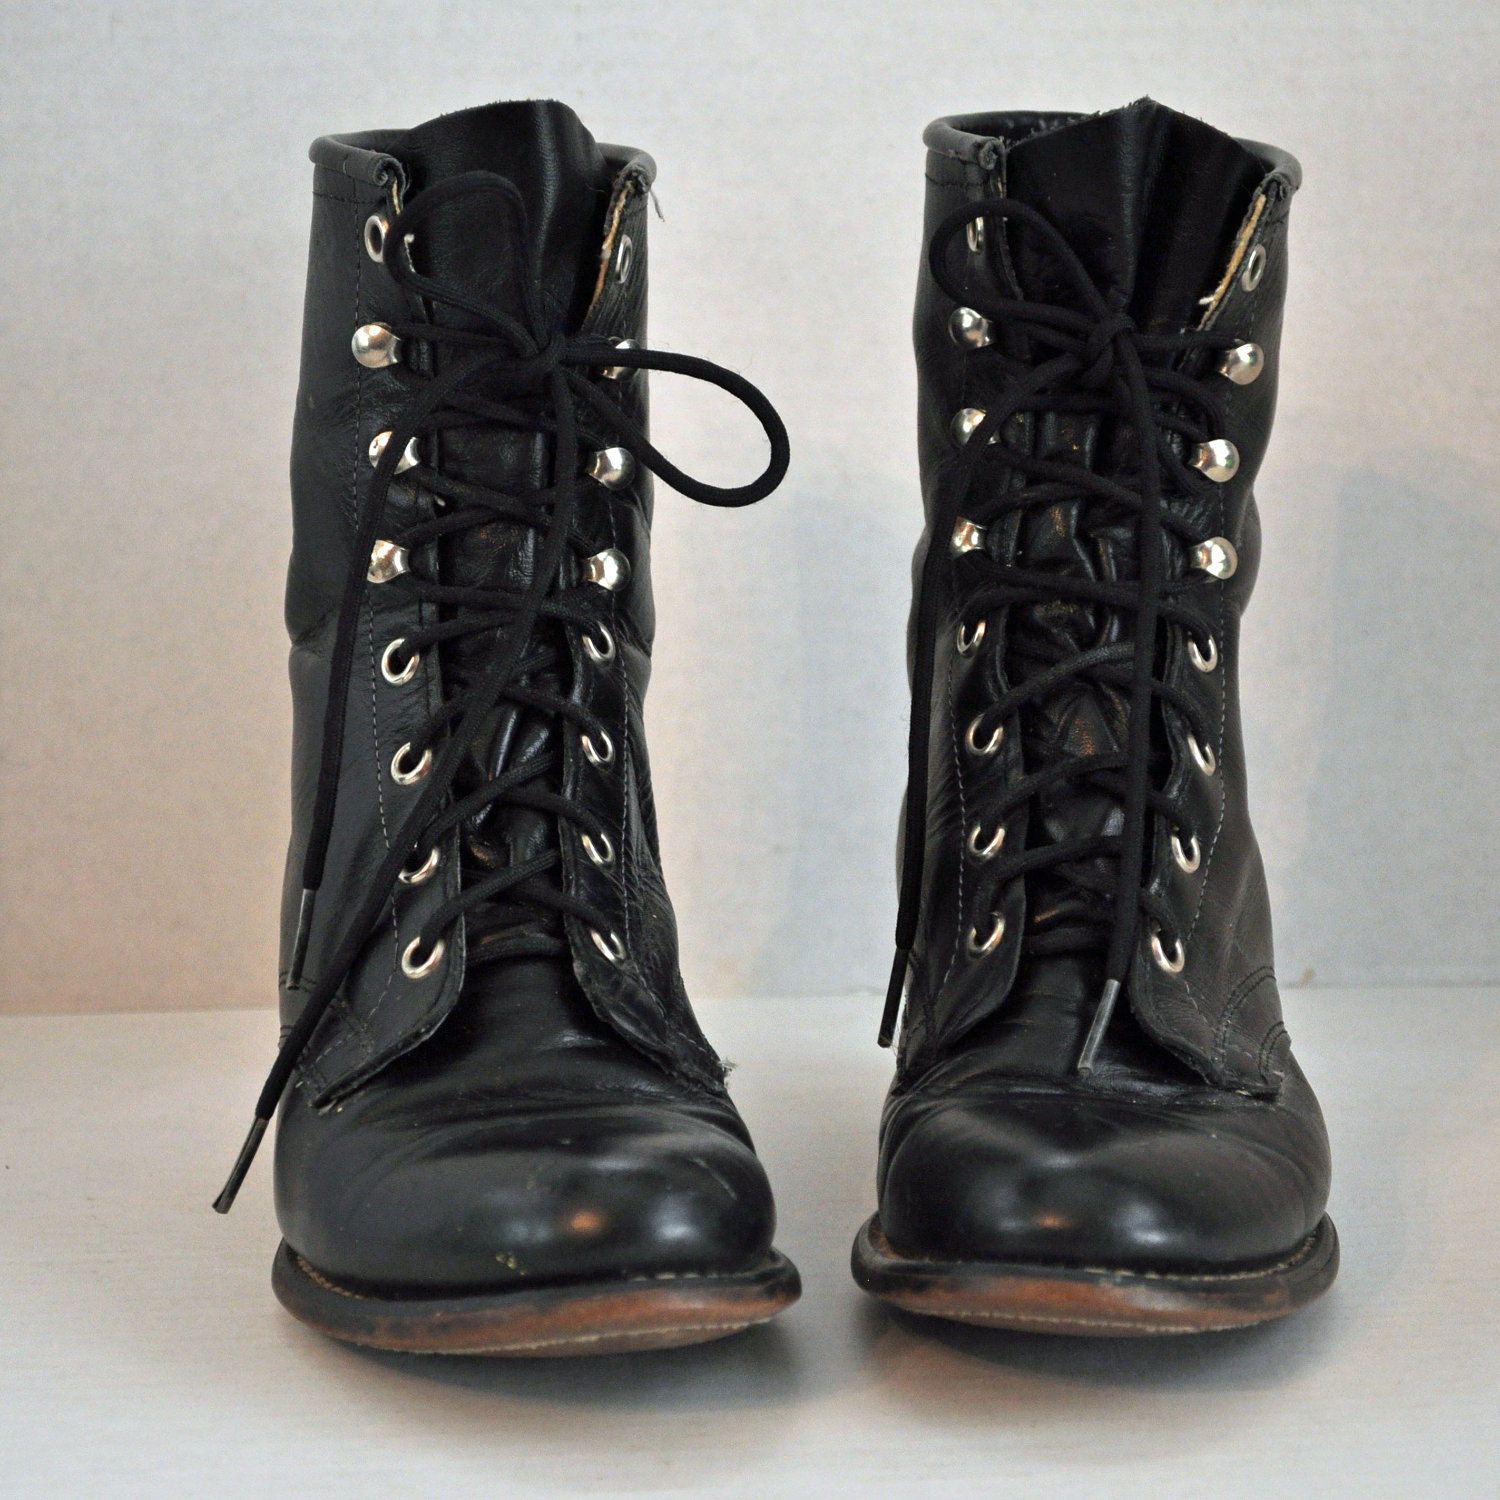 80s Vintage Lace Up Ankle Boots Distressed Black Leather